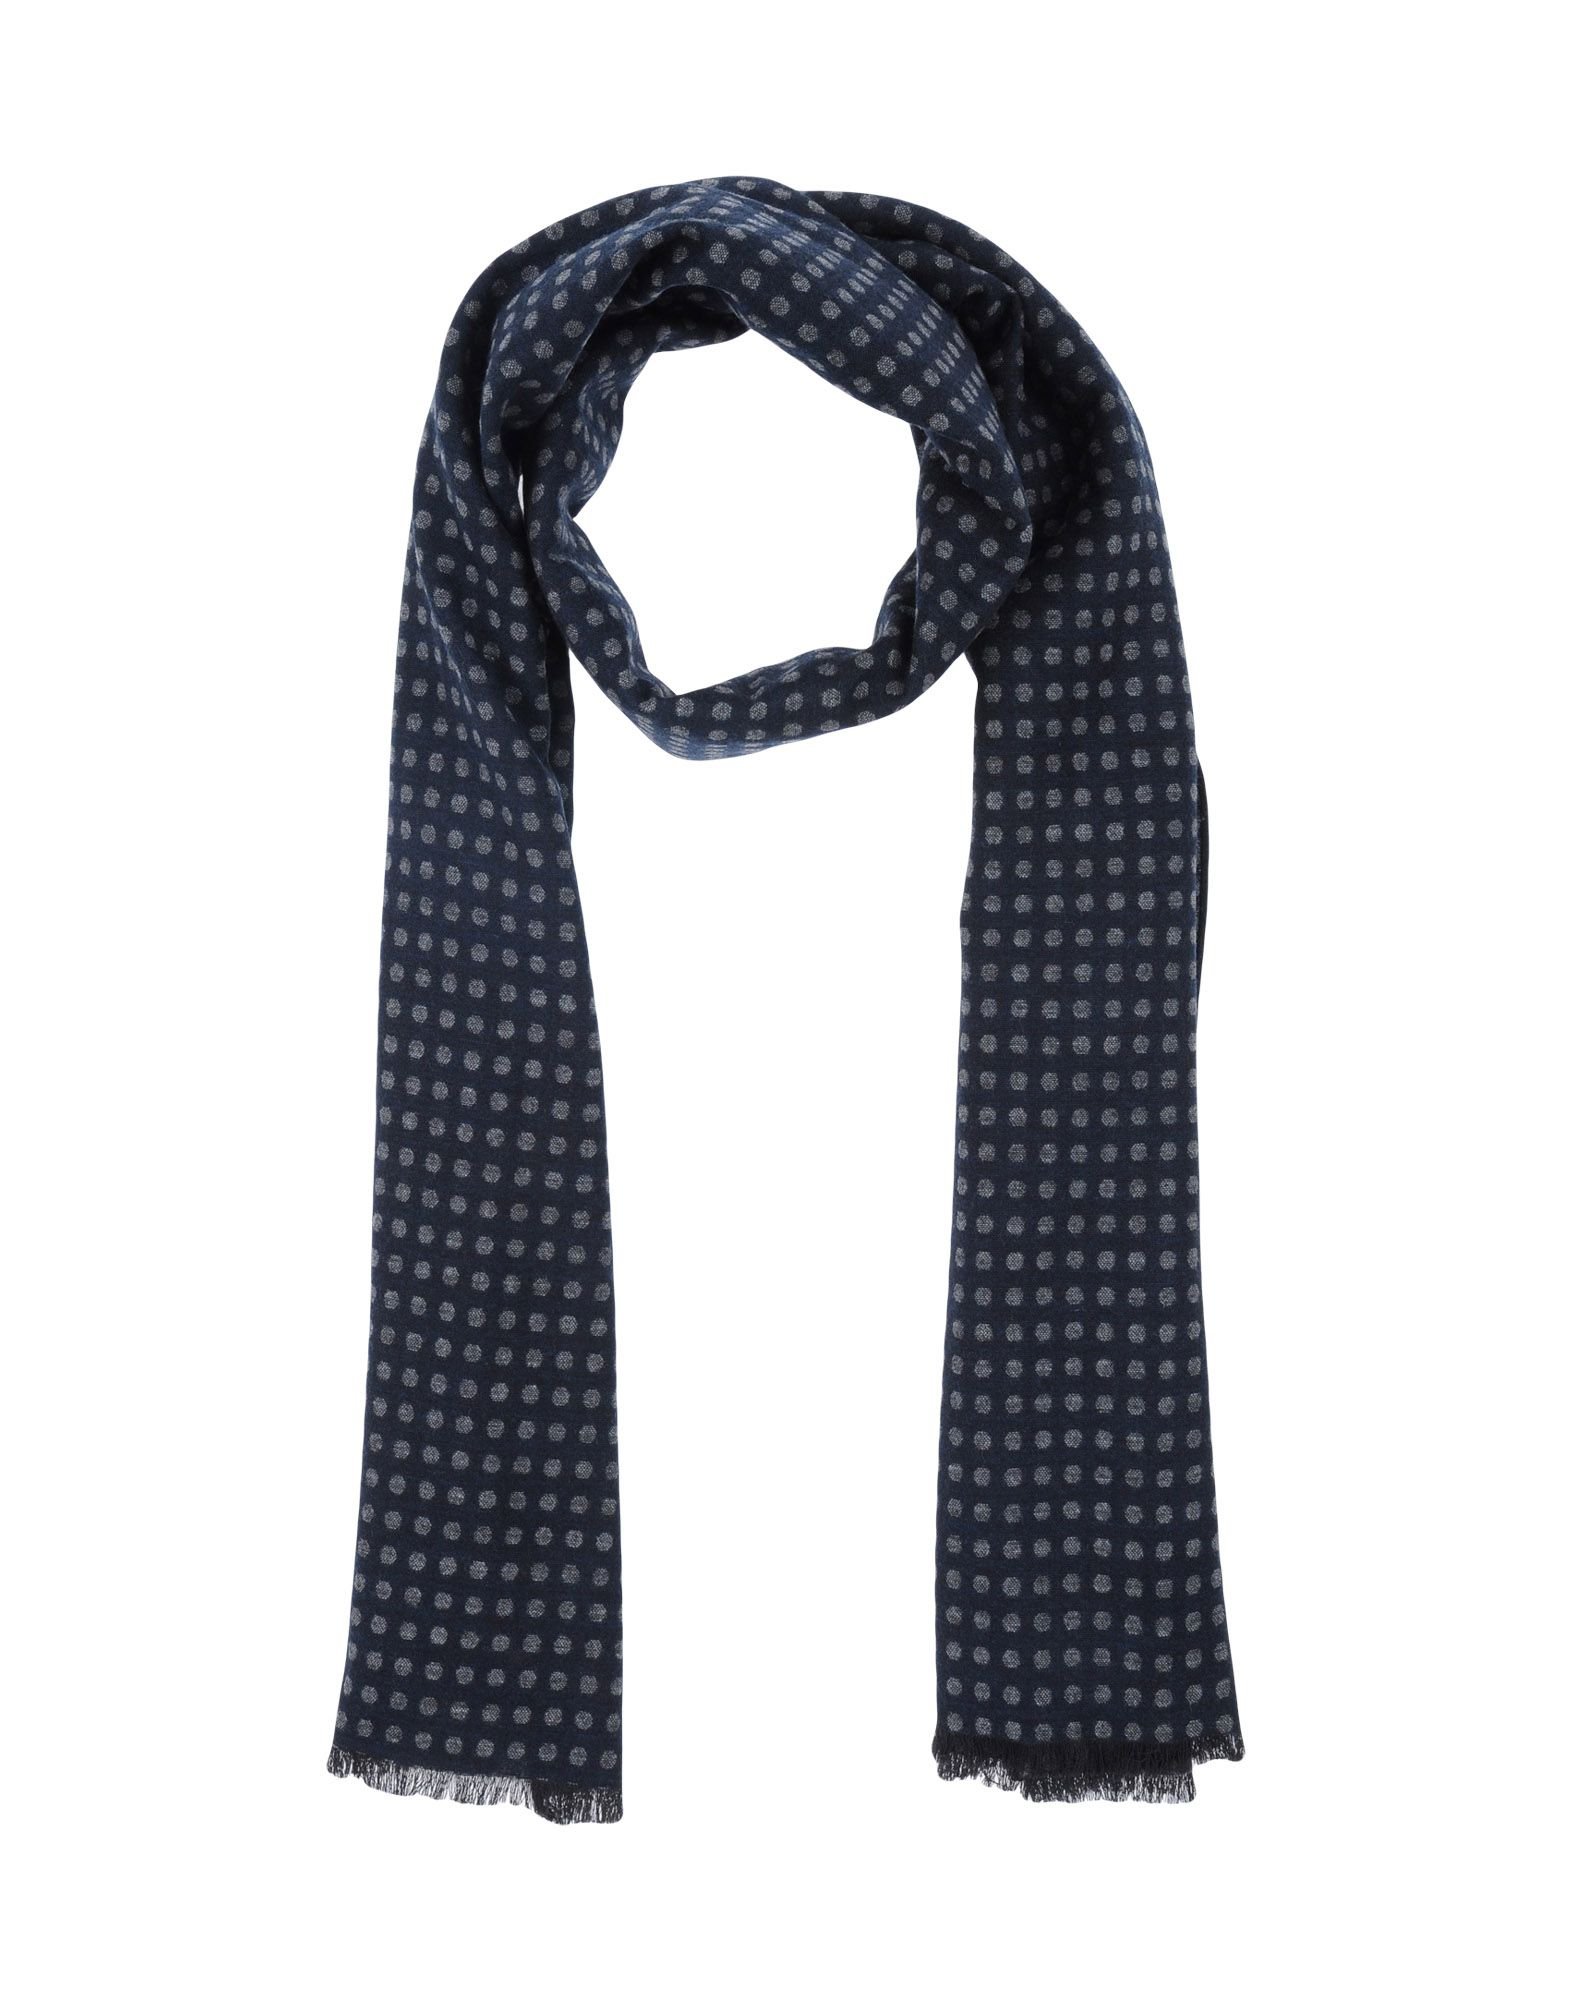 New $200 Luigi Borrelli Blue Long Scarf